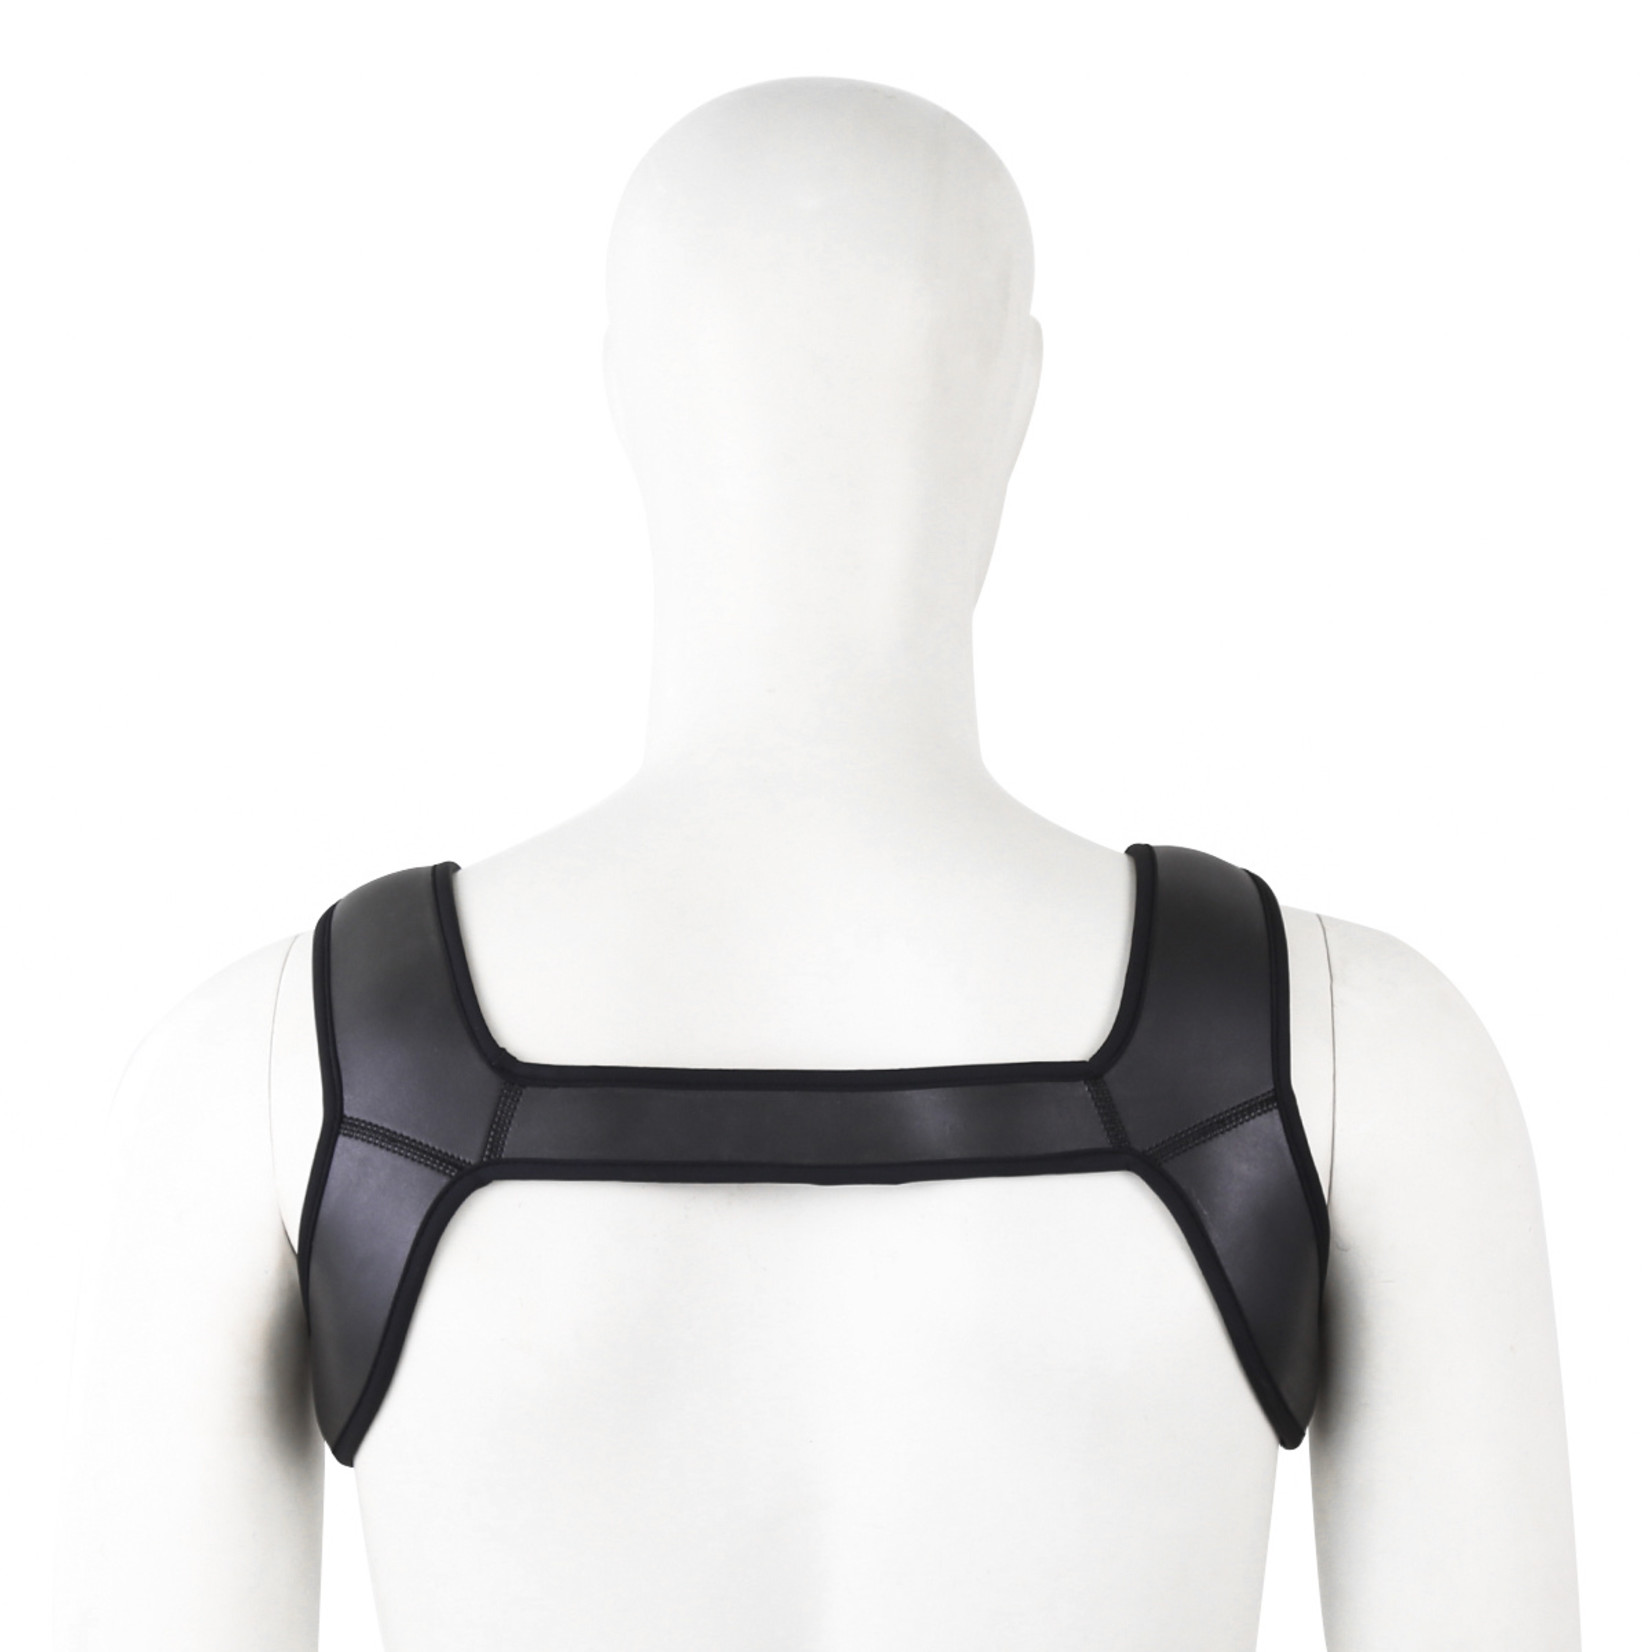 KIOTOS Leather Harness Sport Muscle Protector L